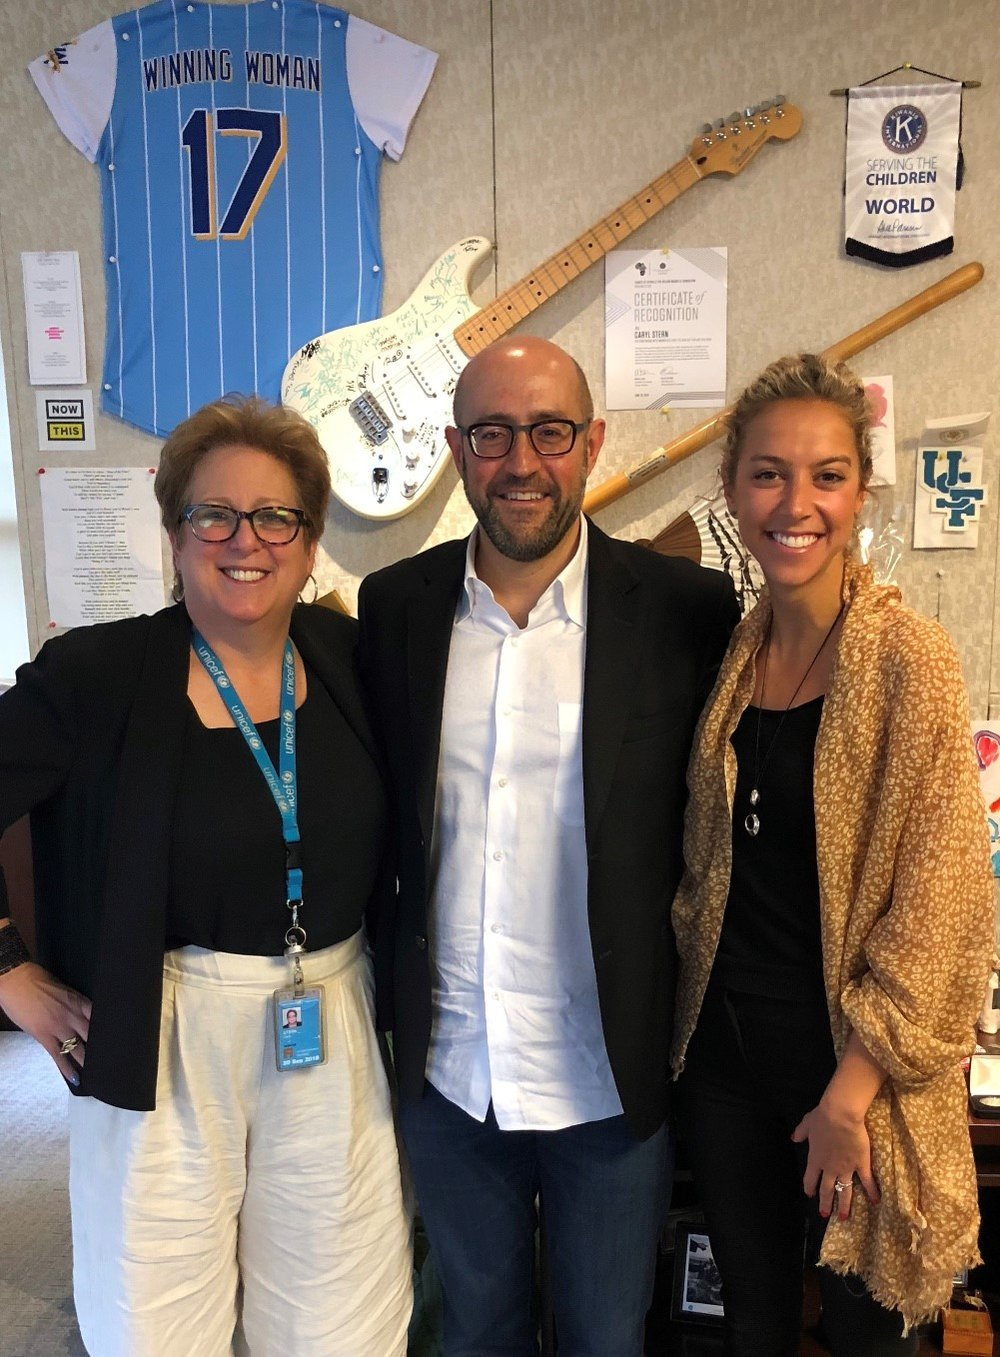 Jay Rosenzweig, Caryl Stern & Chelsea Peters at Head Office of UNICEF USA in NYC 20180531.jpg